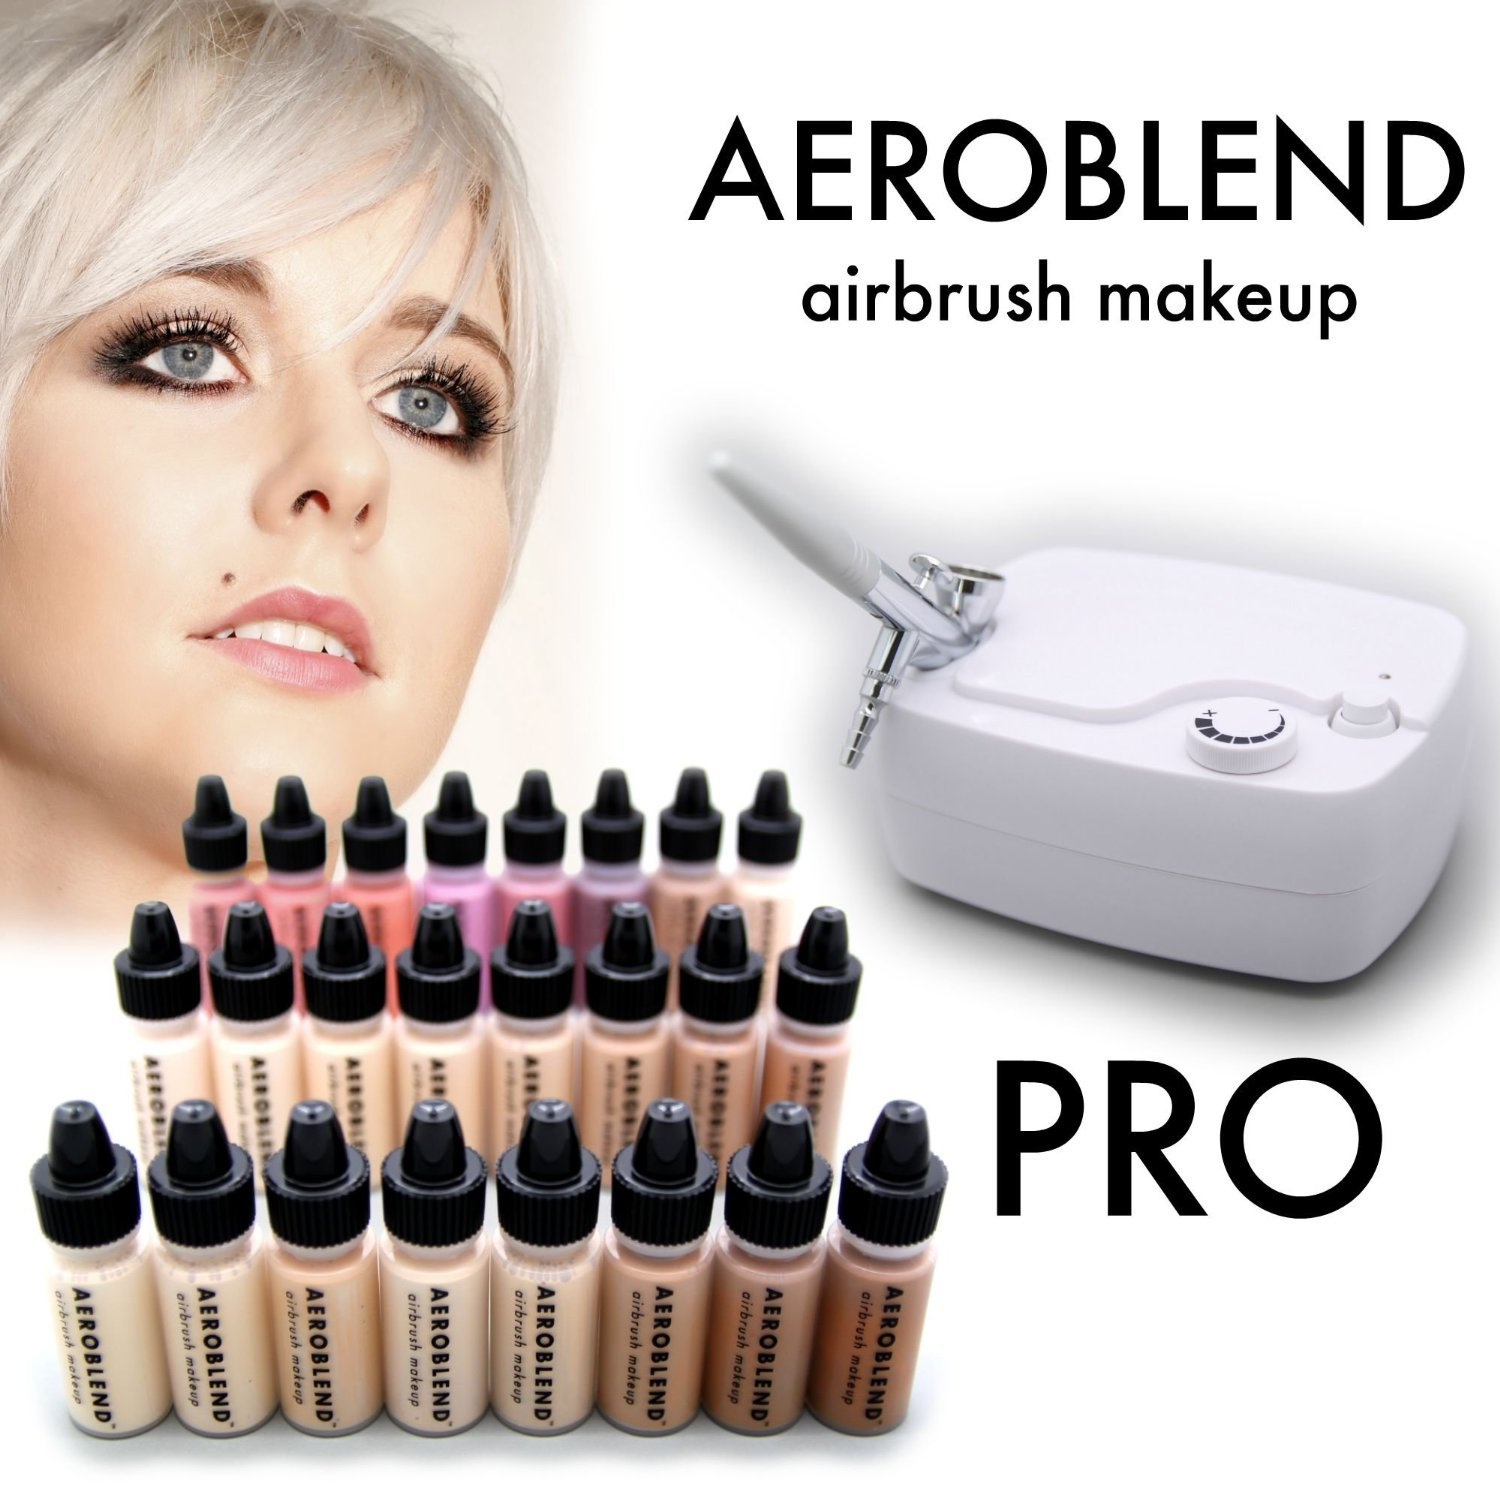 Aeroblend Airbrush Makeup PRO Starter Kit - Professional Cosmetic Airbrush Makeup System - 24 Color - Full 1-Year Warranty AEROPRO1